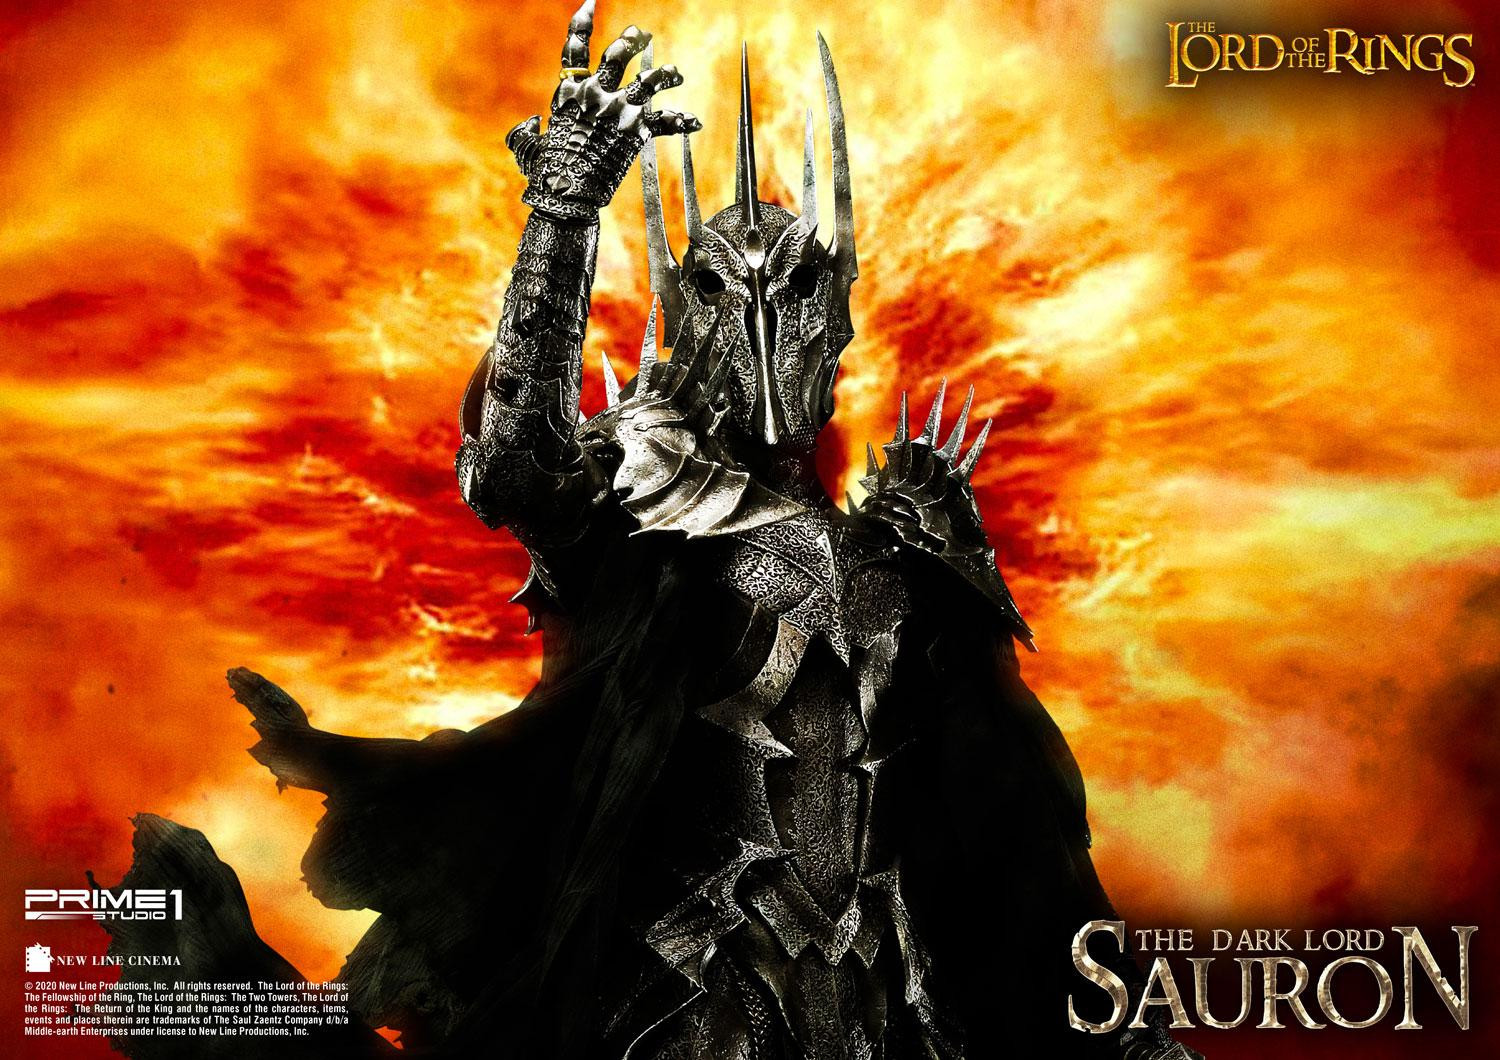 SAURON The Lord of the Rings (Film) The Dark Lord of Mordor – Prime1 Movie  ca 109 cm EXCLUSIVE VERSION – bunker158.com